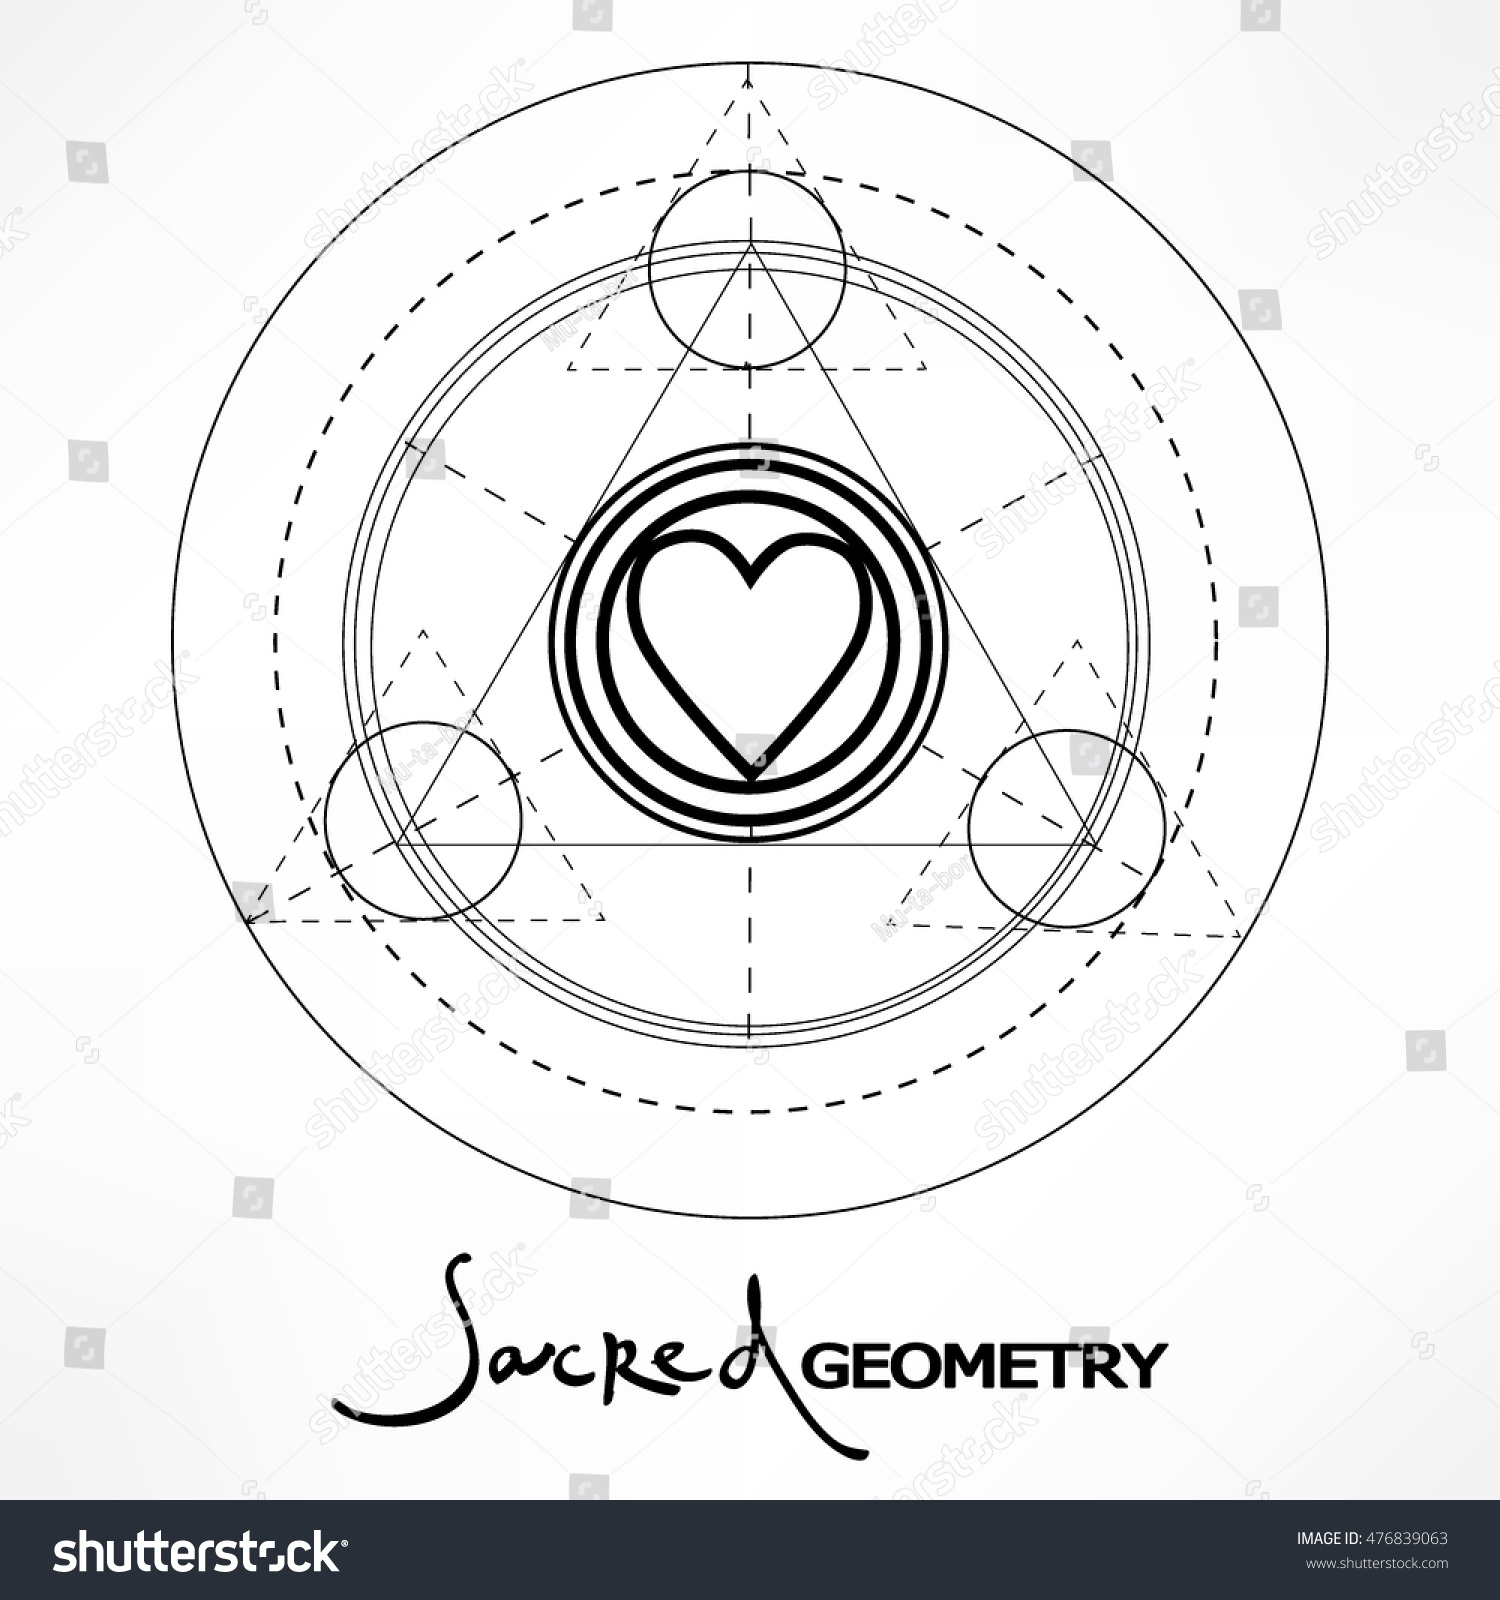 Symbol trinity icon force lettering sacred stock vector 476839063 symbol of trinity icon force with lettering sacred geometry isolated vector illustration trendy pooptronica Images